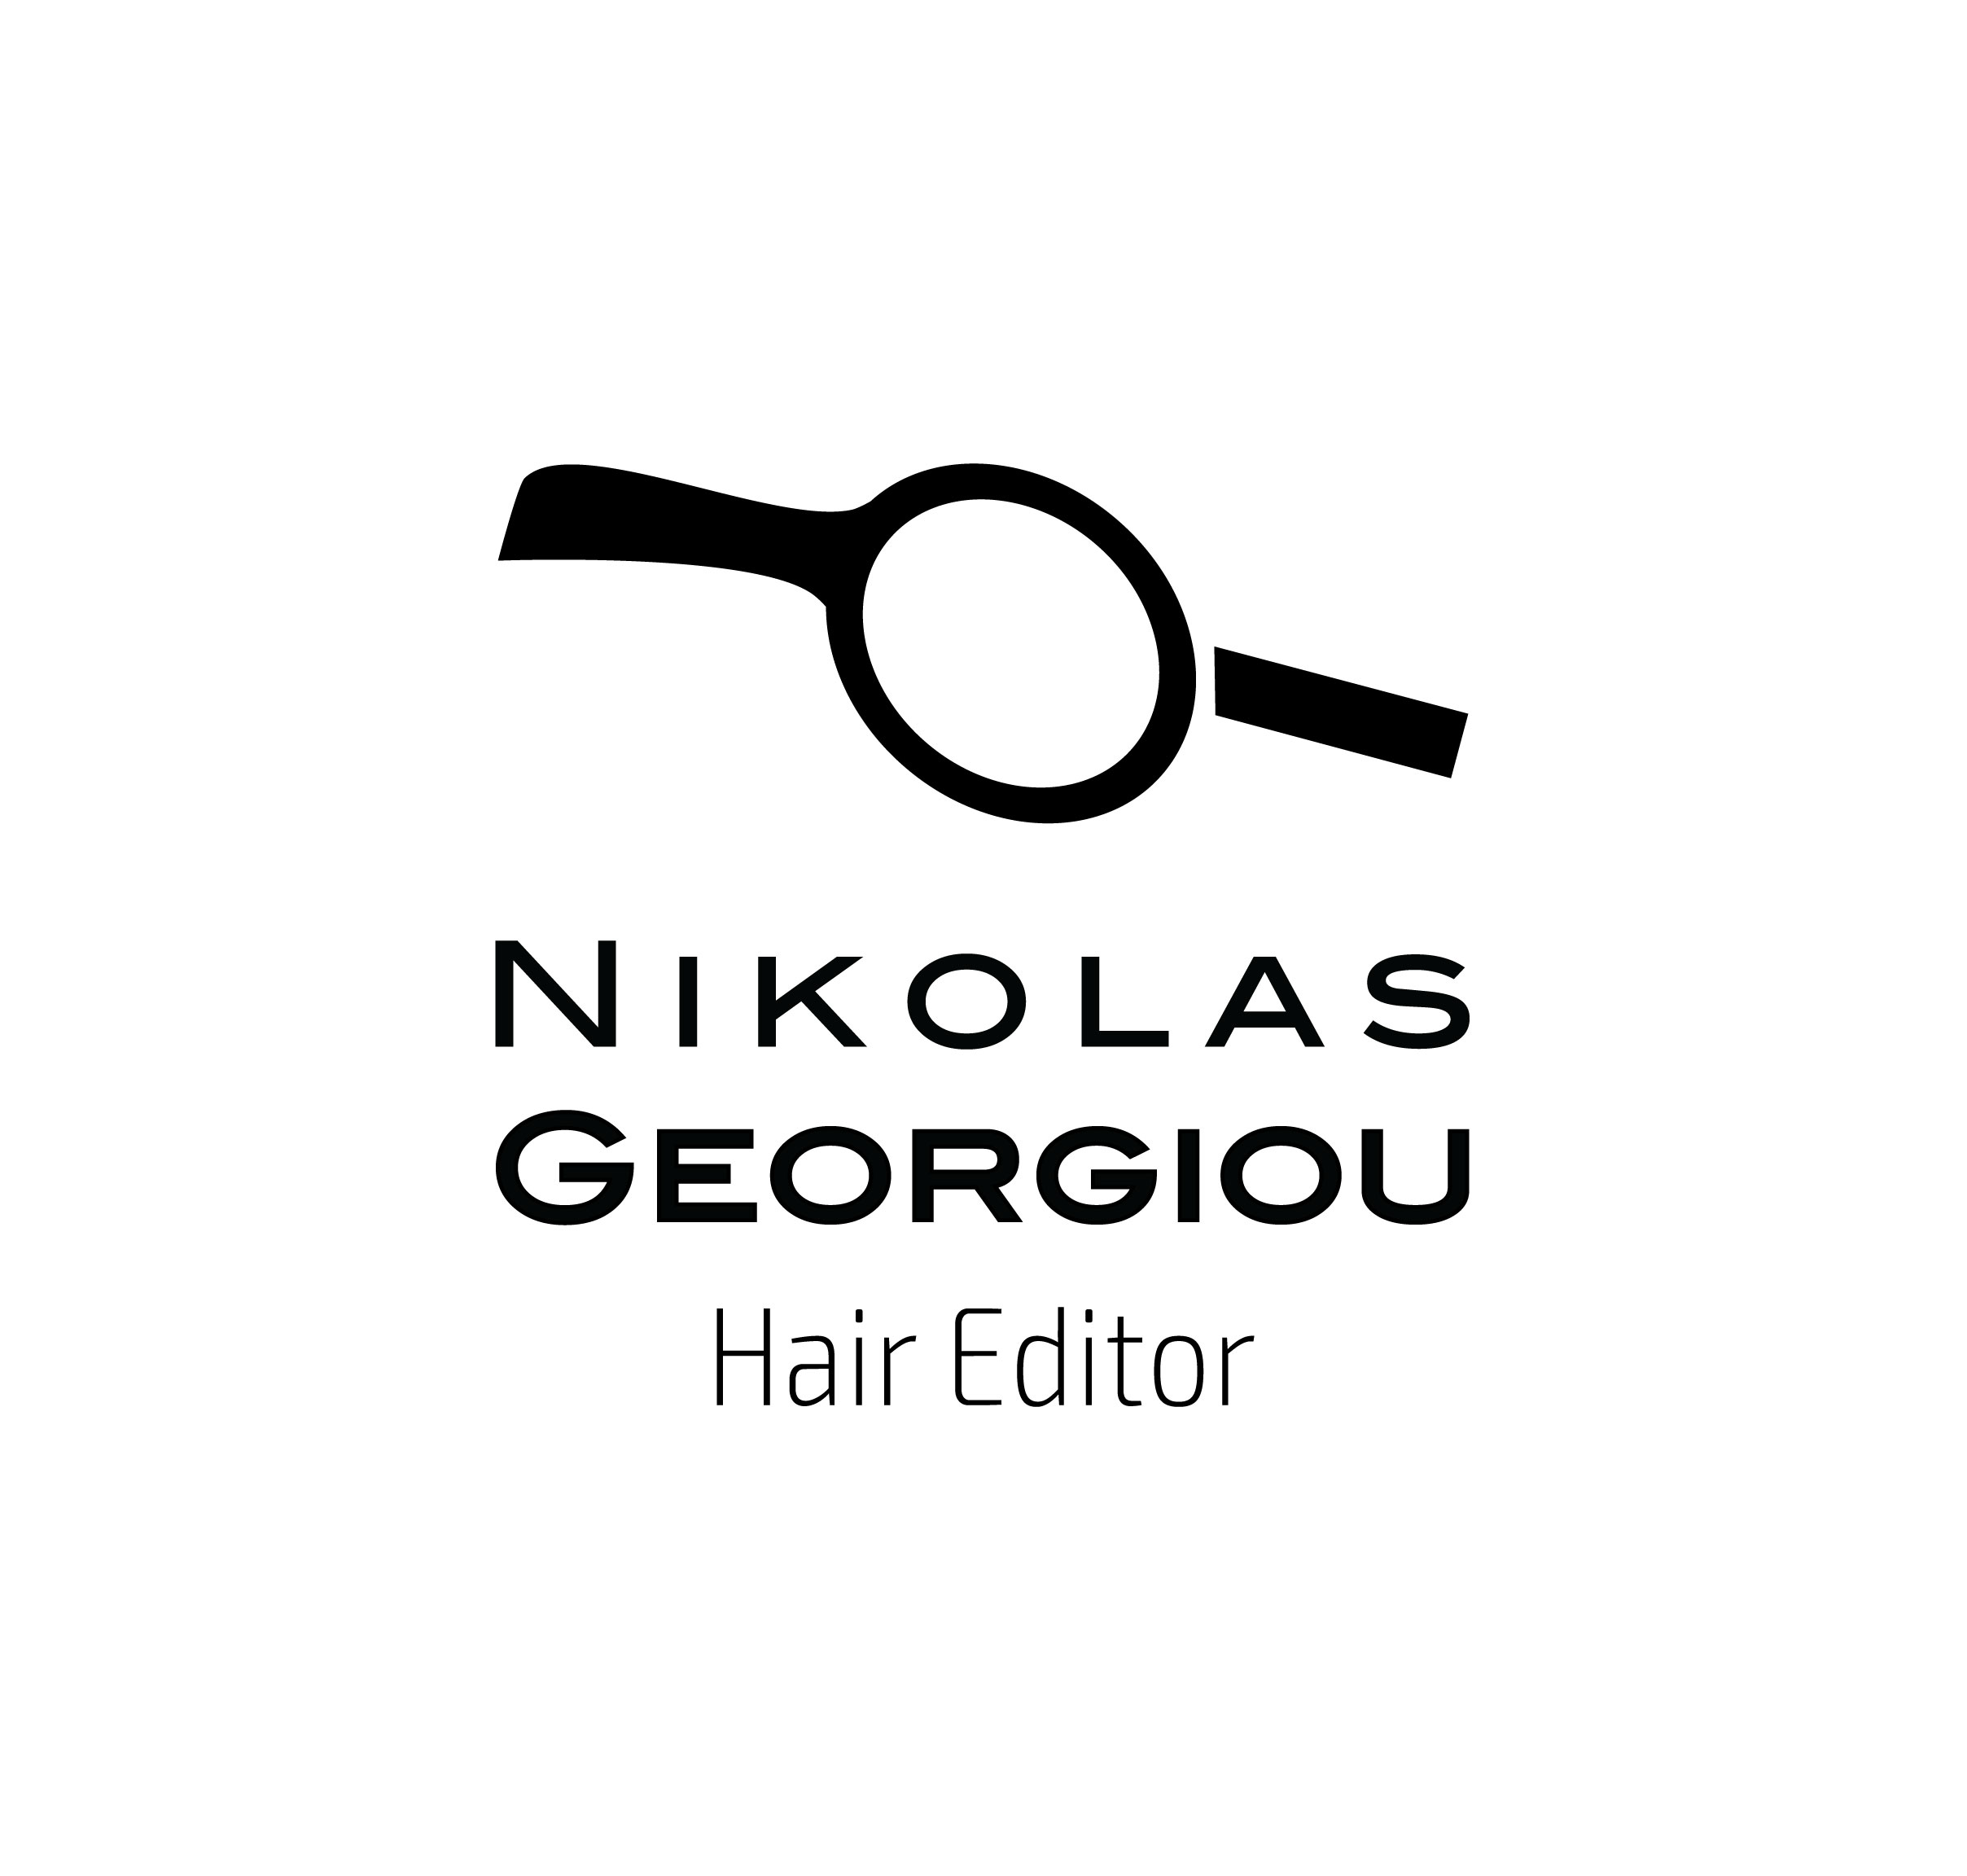 Nikolas Georgiou Hair Editor Logo in White